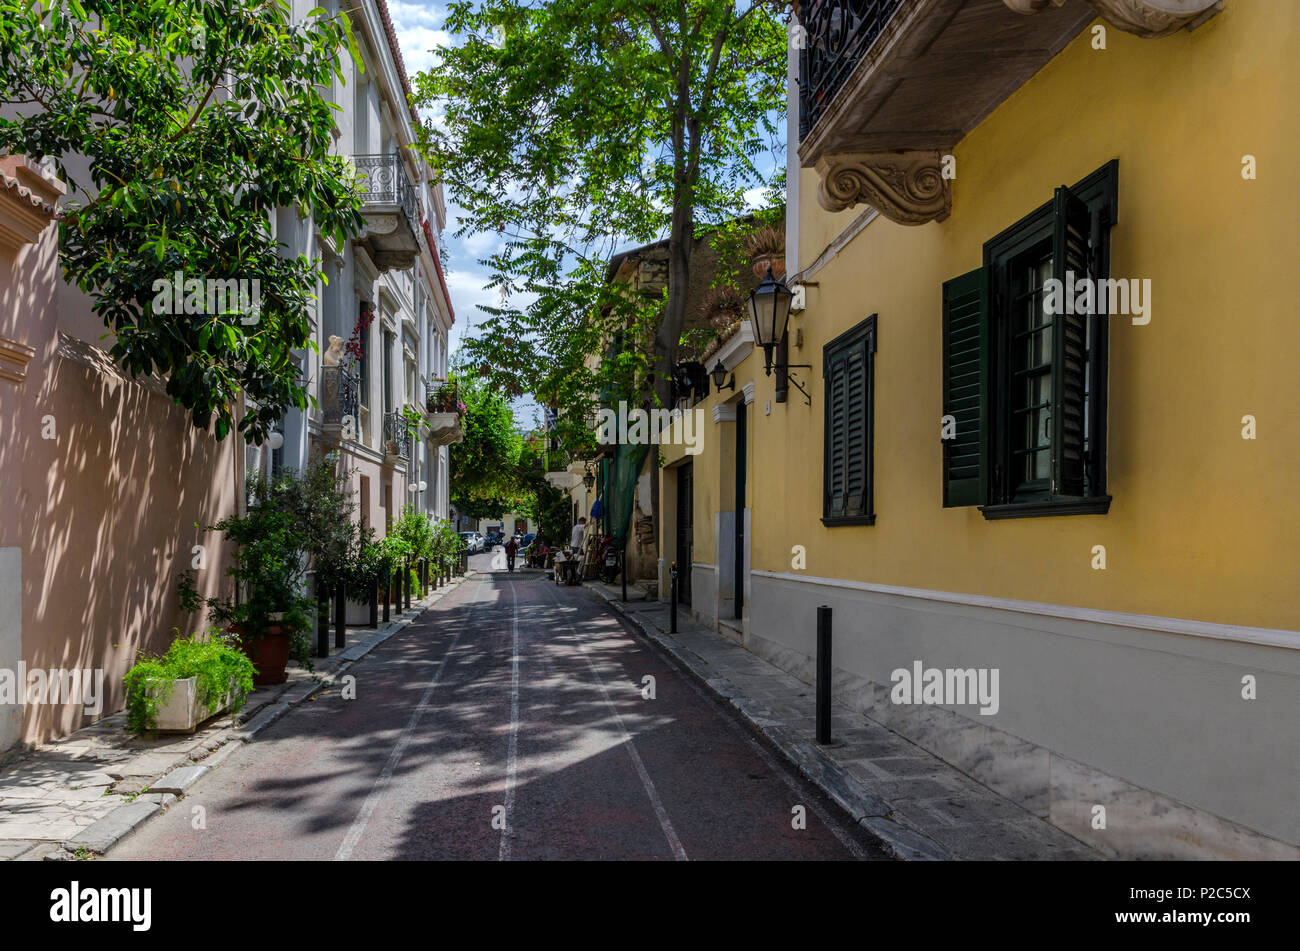 Plaka, Athens / Greece - April 20, 2018: View of a neighborhhod in Plaka, historic center of Athens city - Stock Image